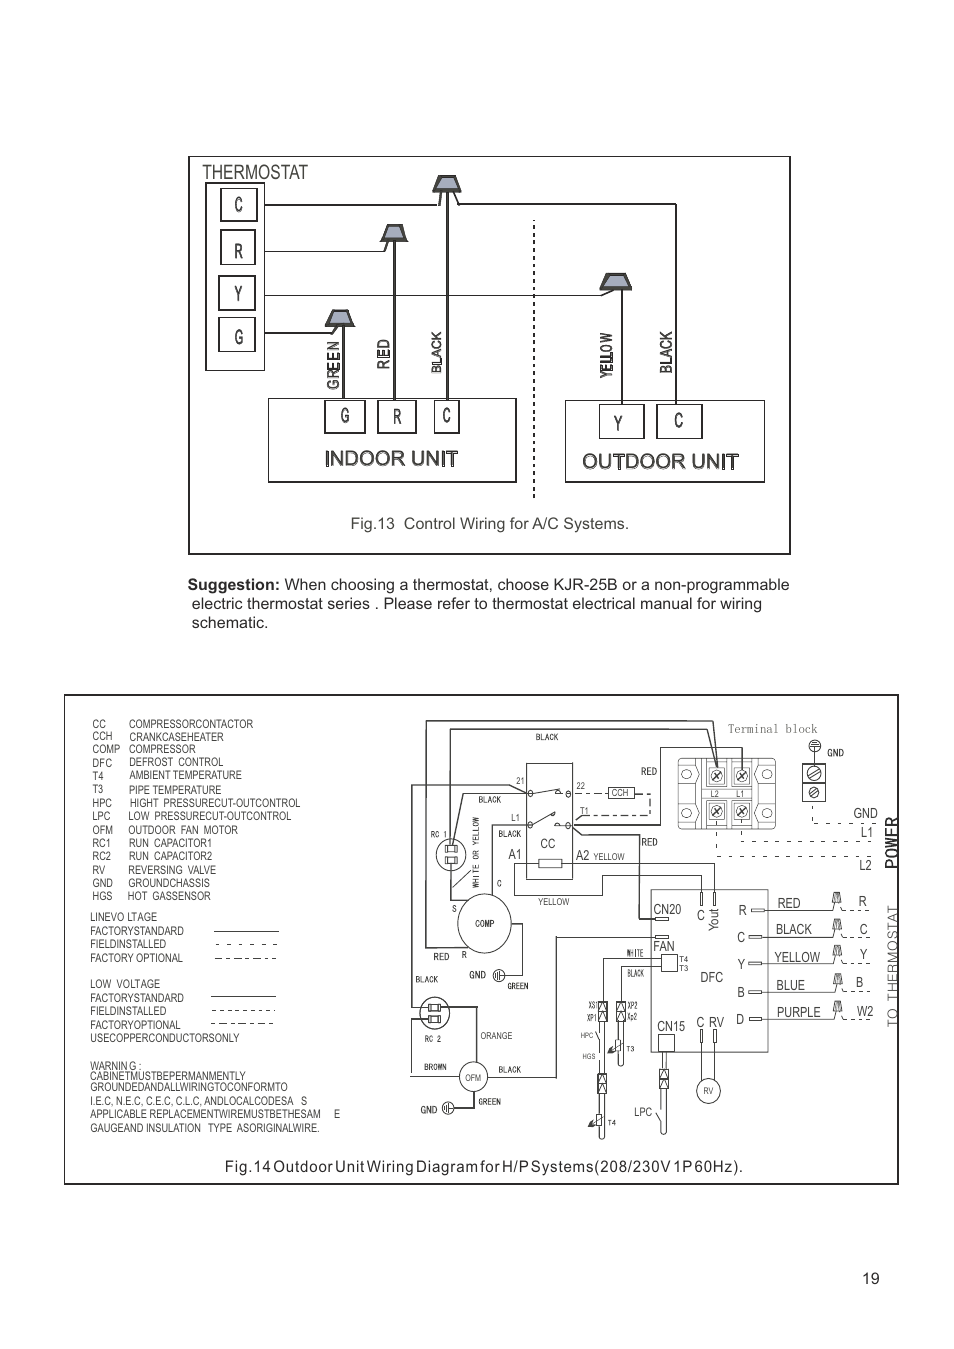 Klimaire Wiring Diagram Schemes Outdoor Unit Diagrams Indoor Thermostat C Yr G Csm42h2p16 Rh Manualsdir Com Mini Split